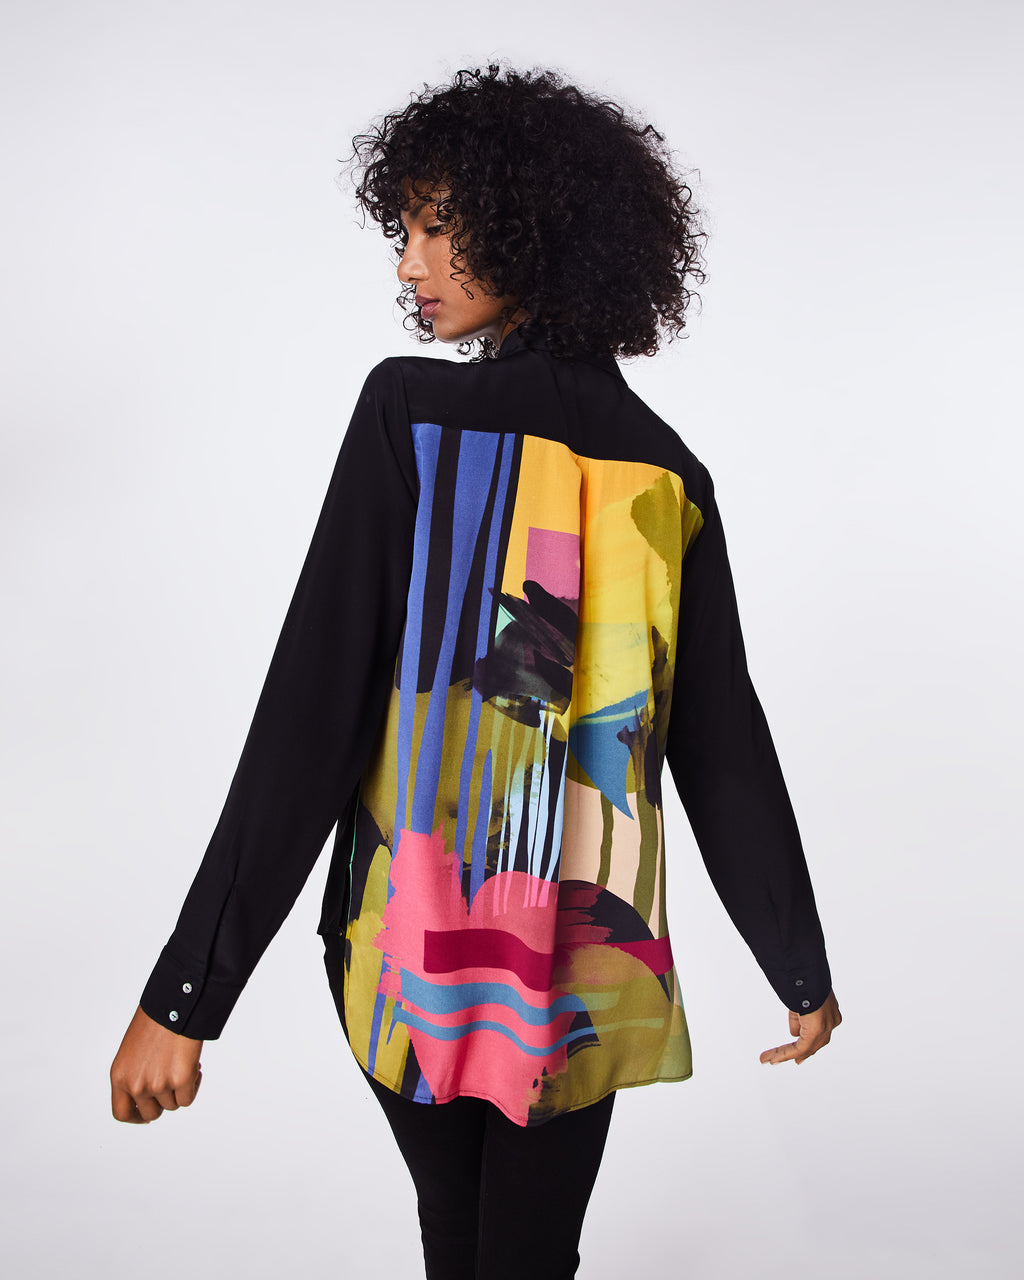 BF10364 - ABSTRACT PAINT BOYFRIEND SHIRT - tops - shirts - IN A SILK BLEND, THIS BOYFRIEND BLOUSE IS GREAT FOR LAYERING AND PAIRED BACK TO JEANS. UNLINED